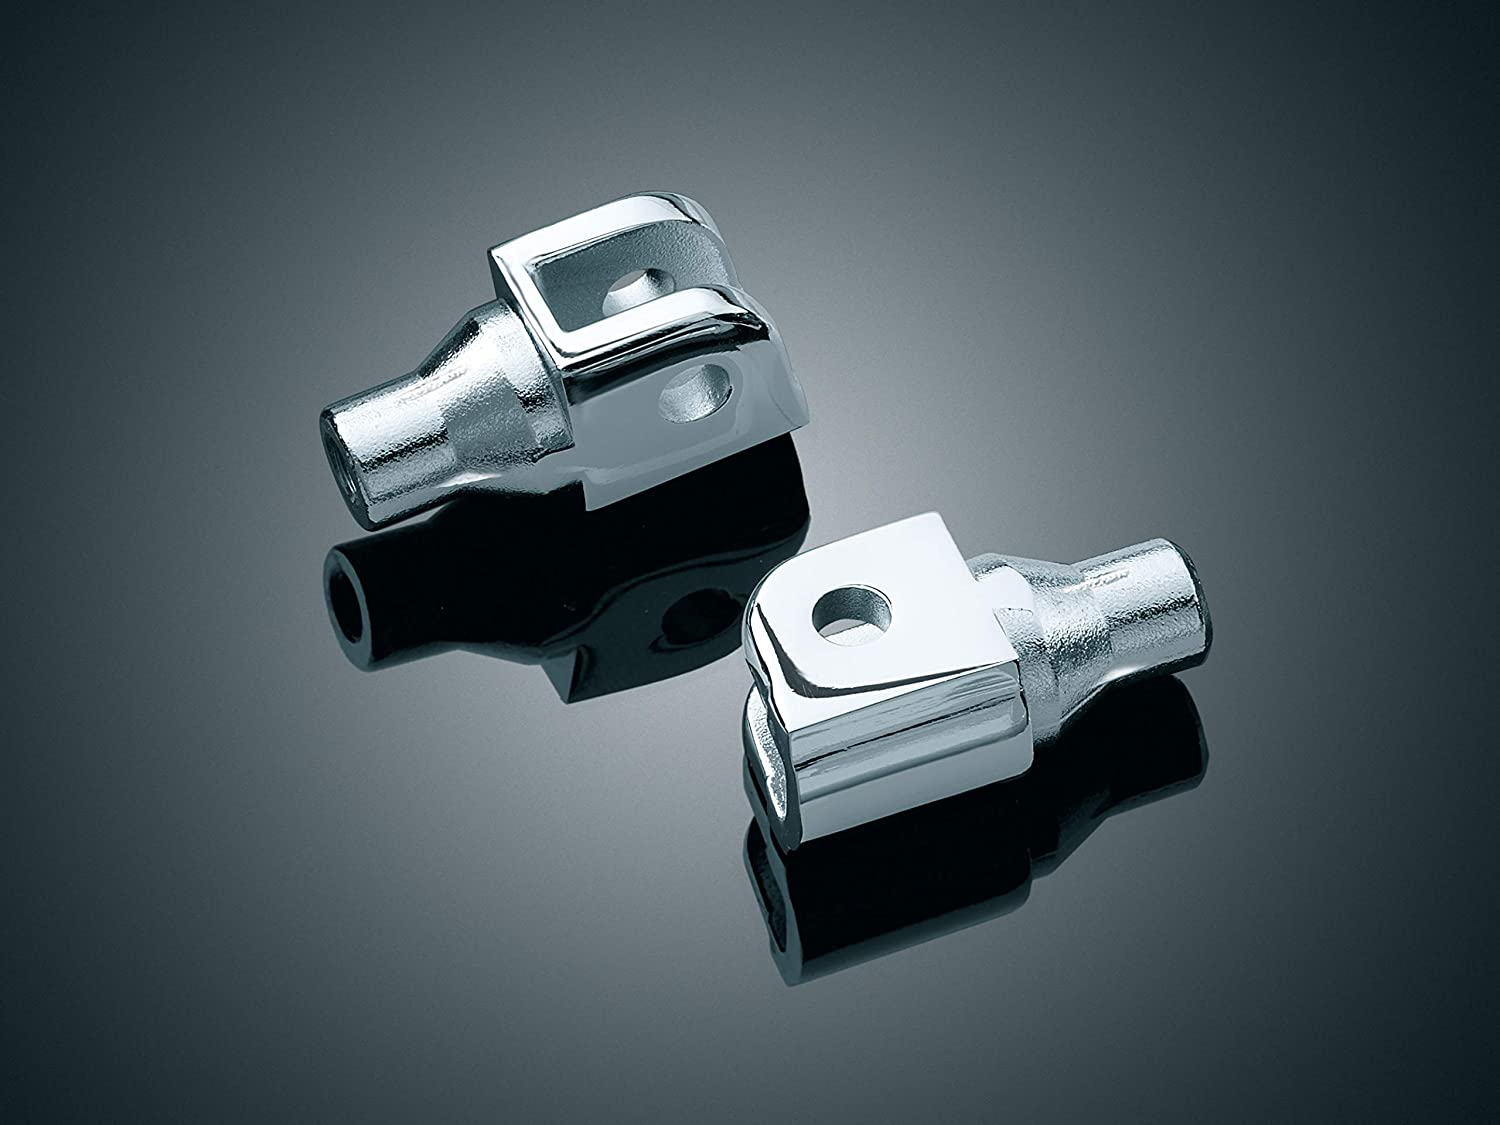 Kuryakyn 7939 Motorcycle Footpeg Component: Gifts Limited price sale Adapters Tapered Peg